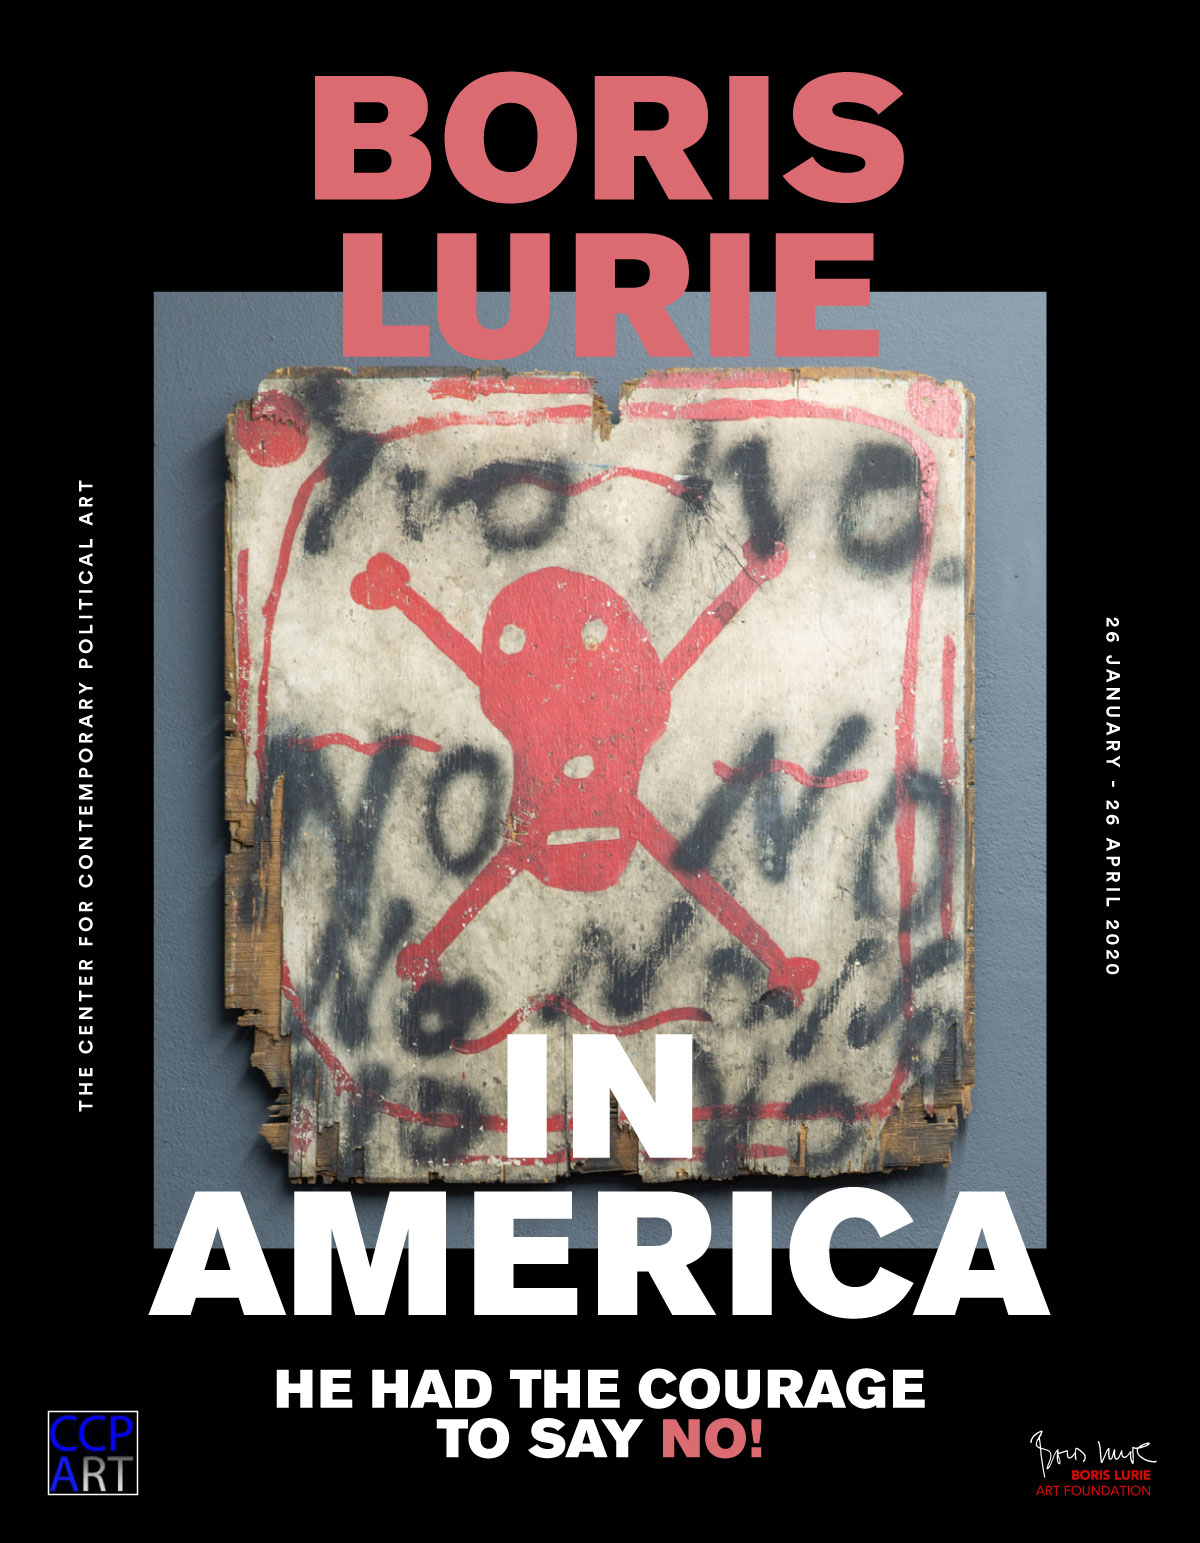 Boris Lurie in America: He had the courage to say NO! - catalog cover